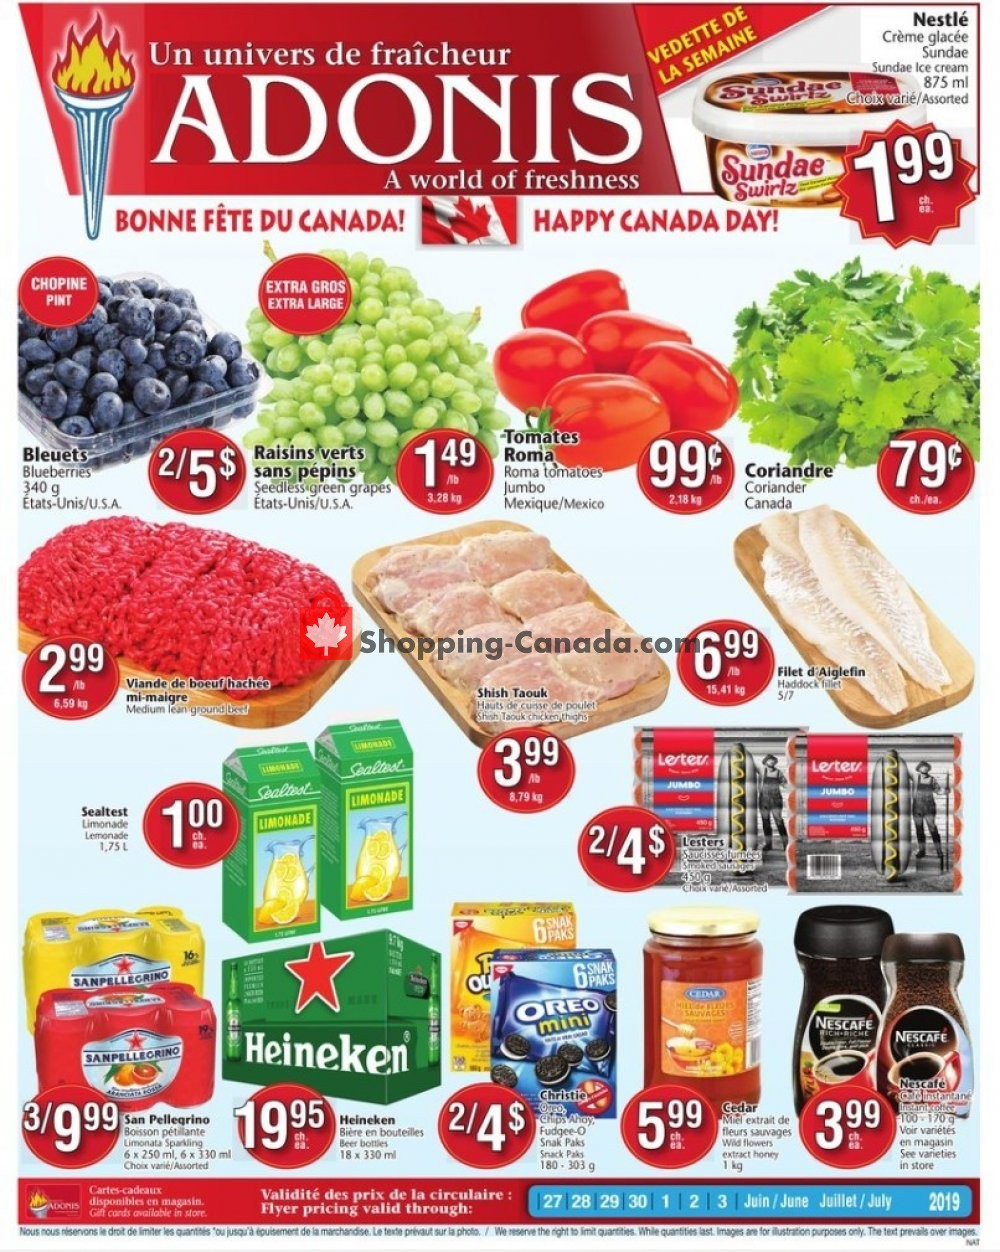 Flyer Marché Adonis Canada - from Thursday June 27, 2019 to Wednesday July 3, 2019